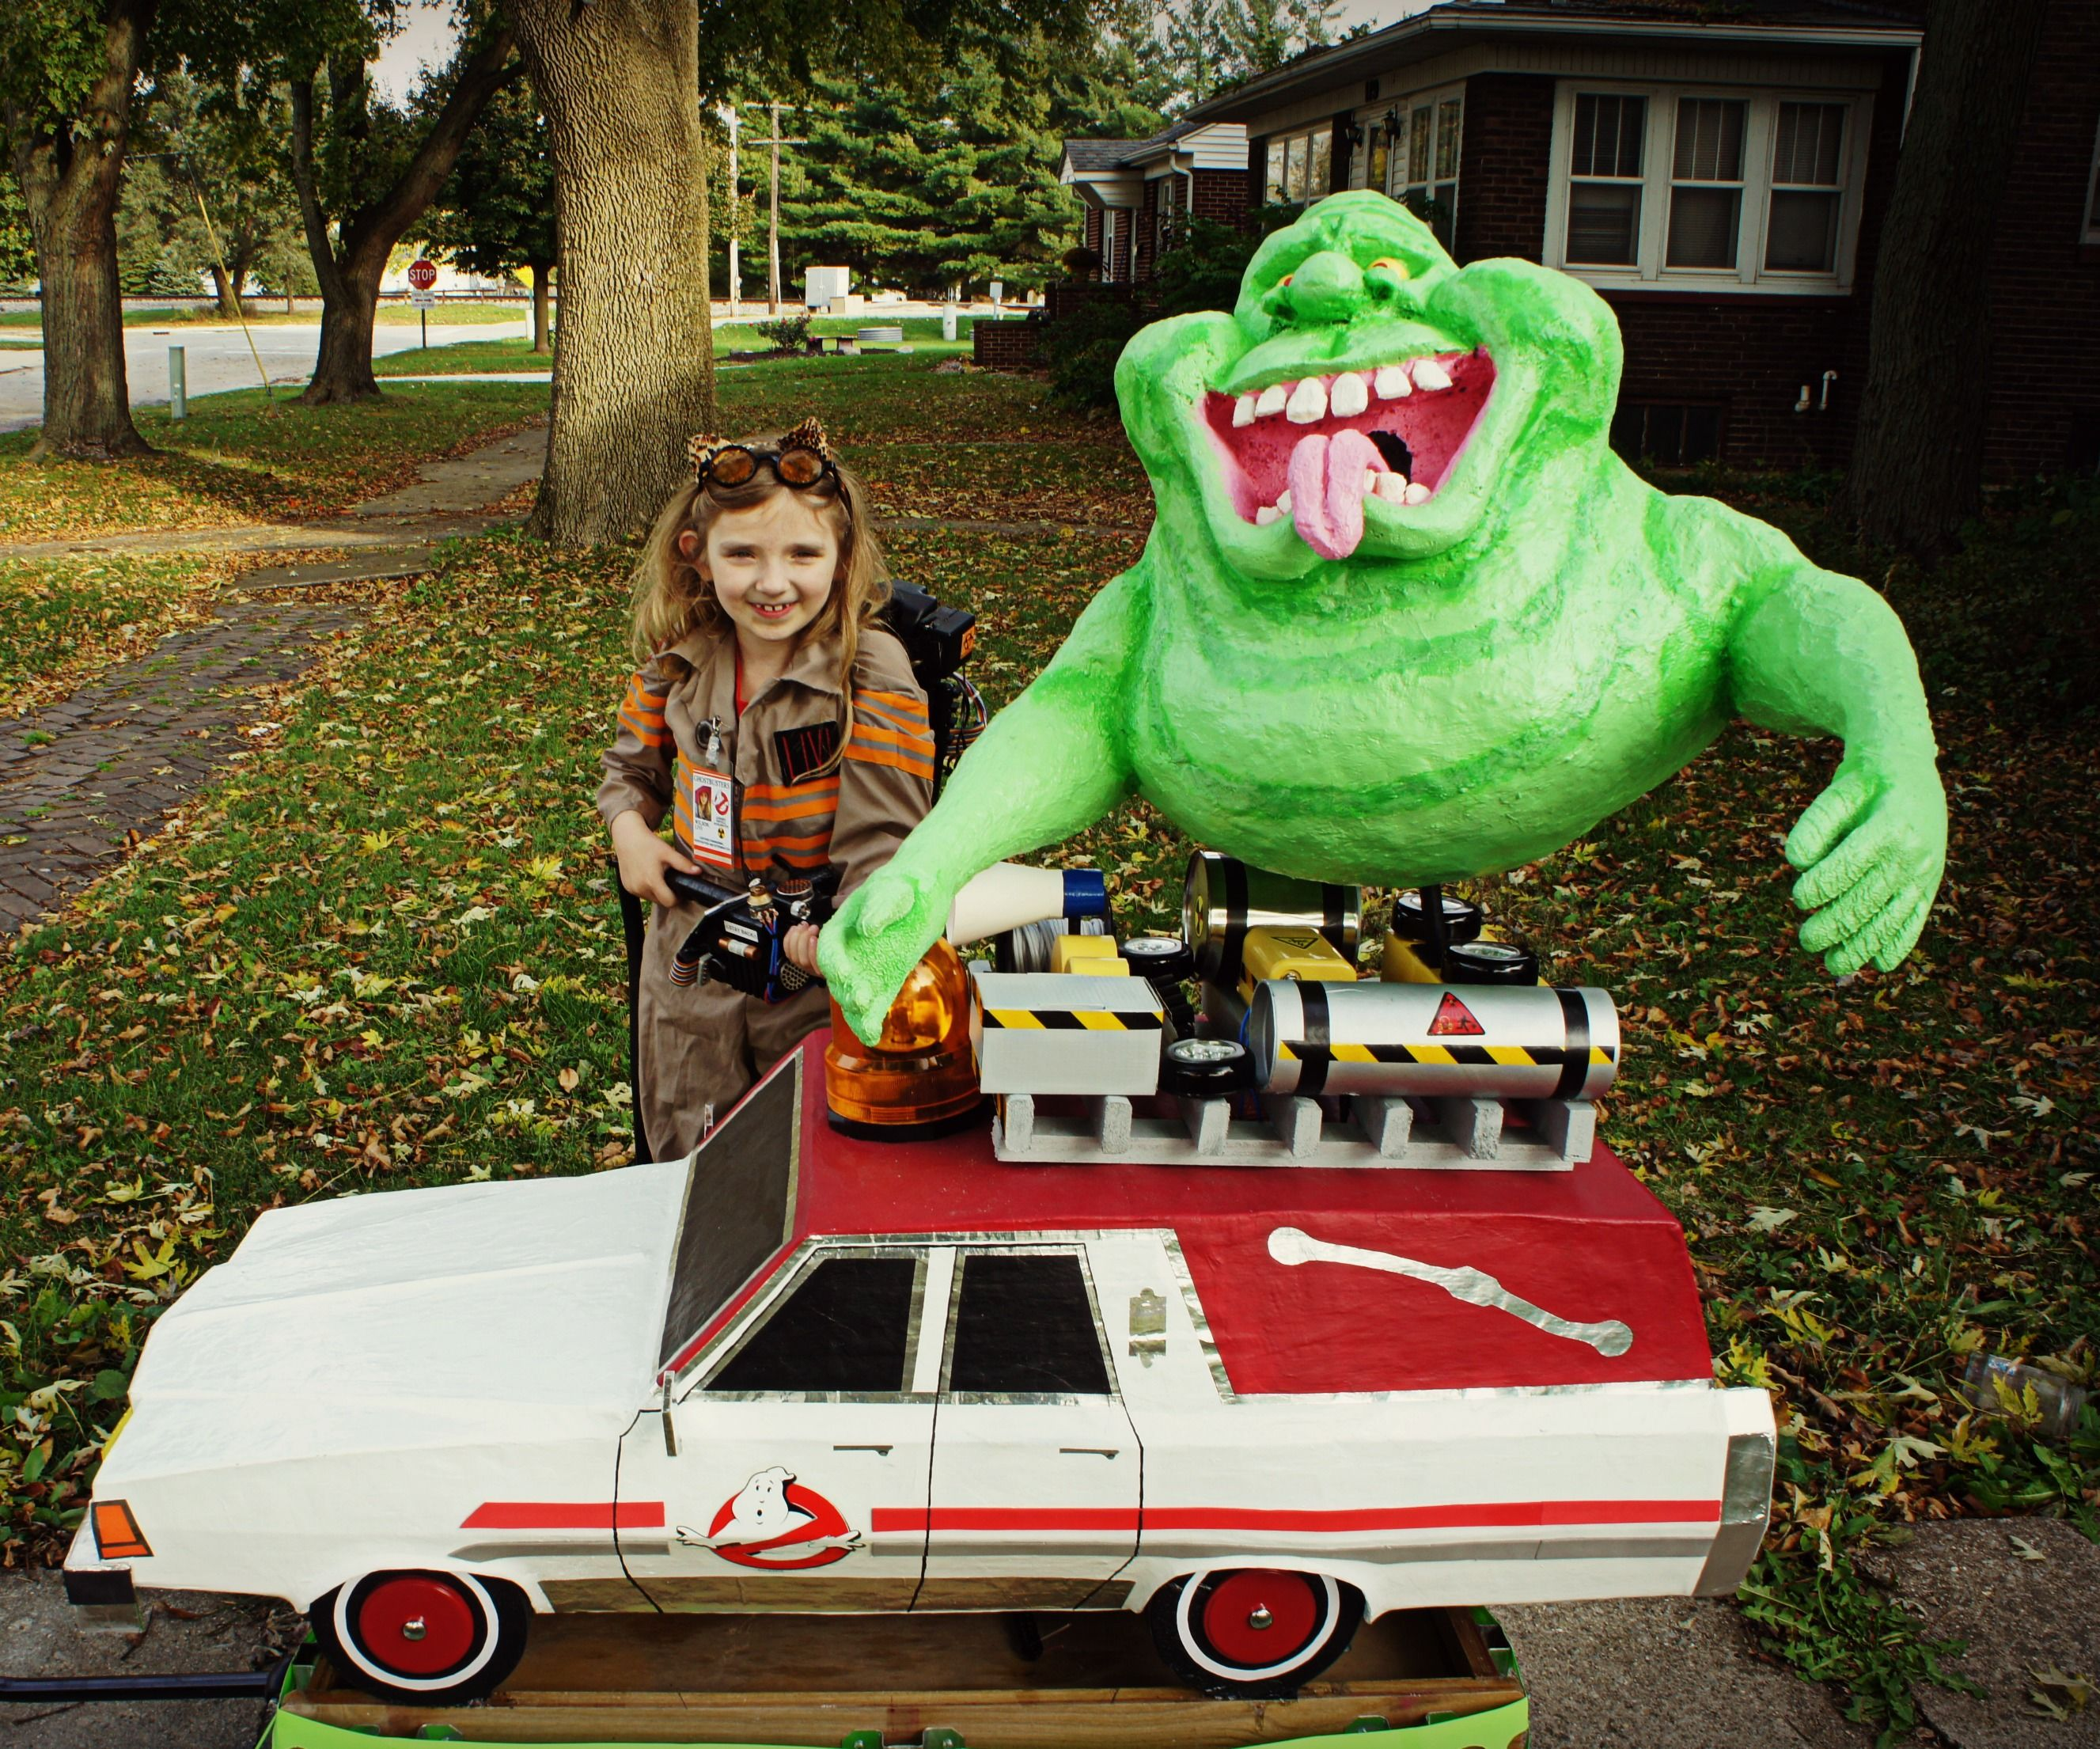 Awesome Ghostbuster with proton pack, Slimer, and Ecto-1